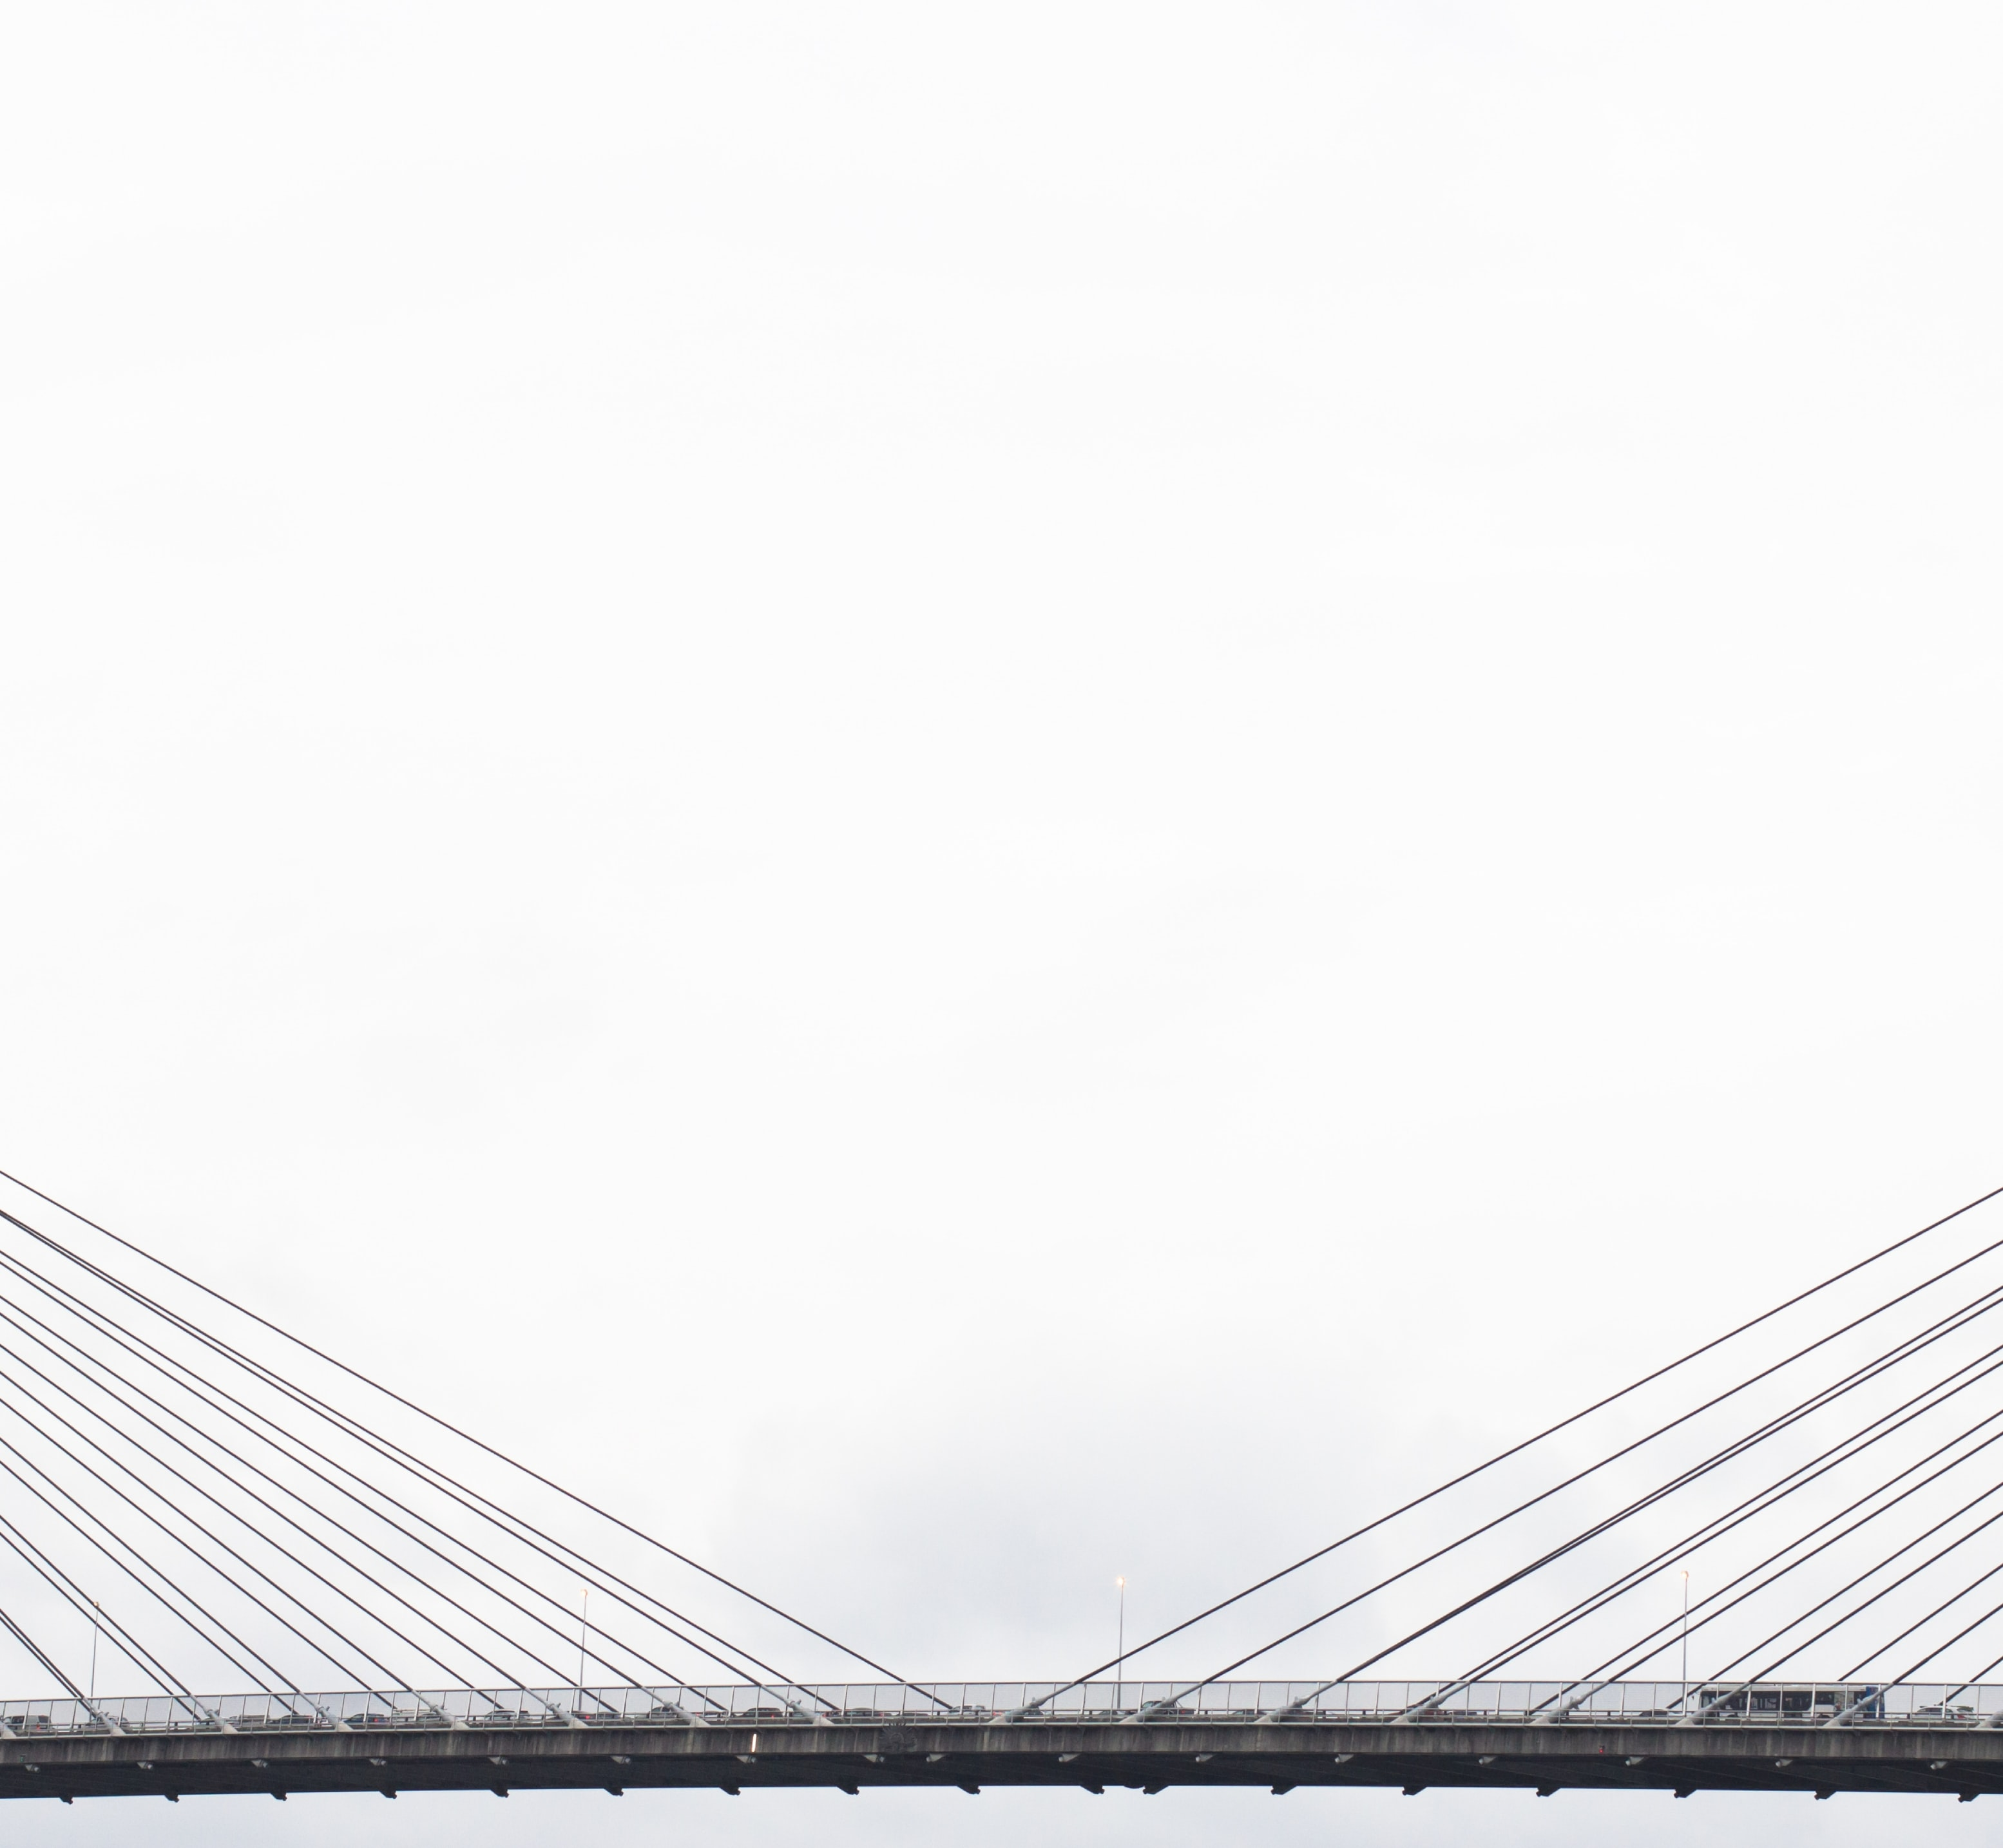 vehicles on grey suspension bridge under cloudy sky during daytime